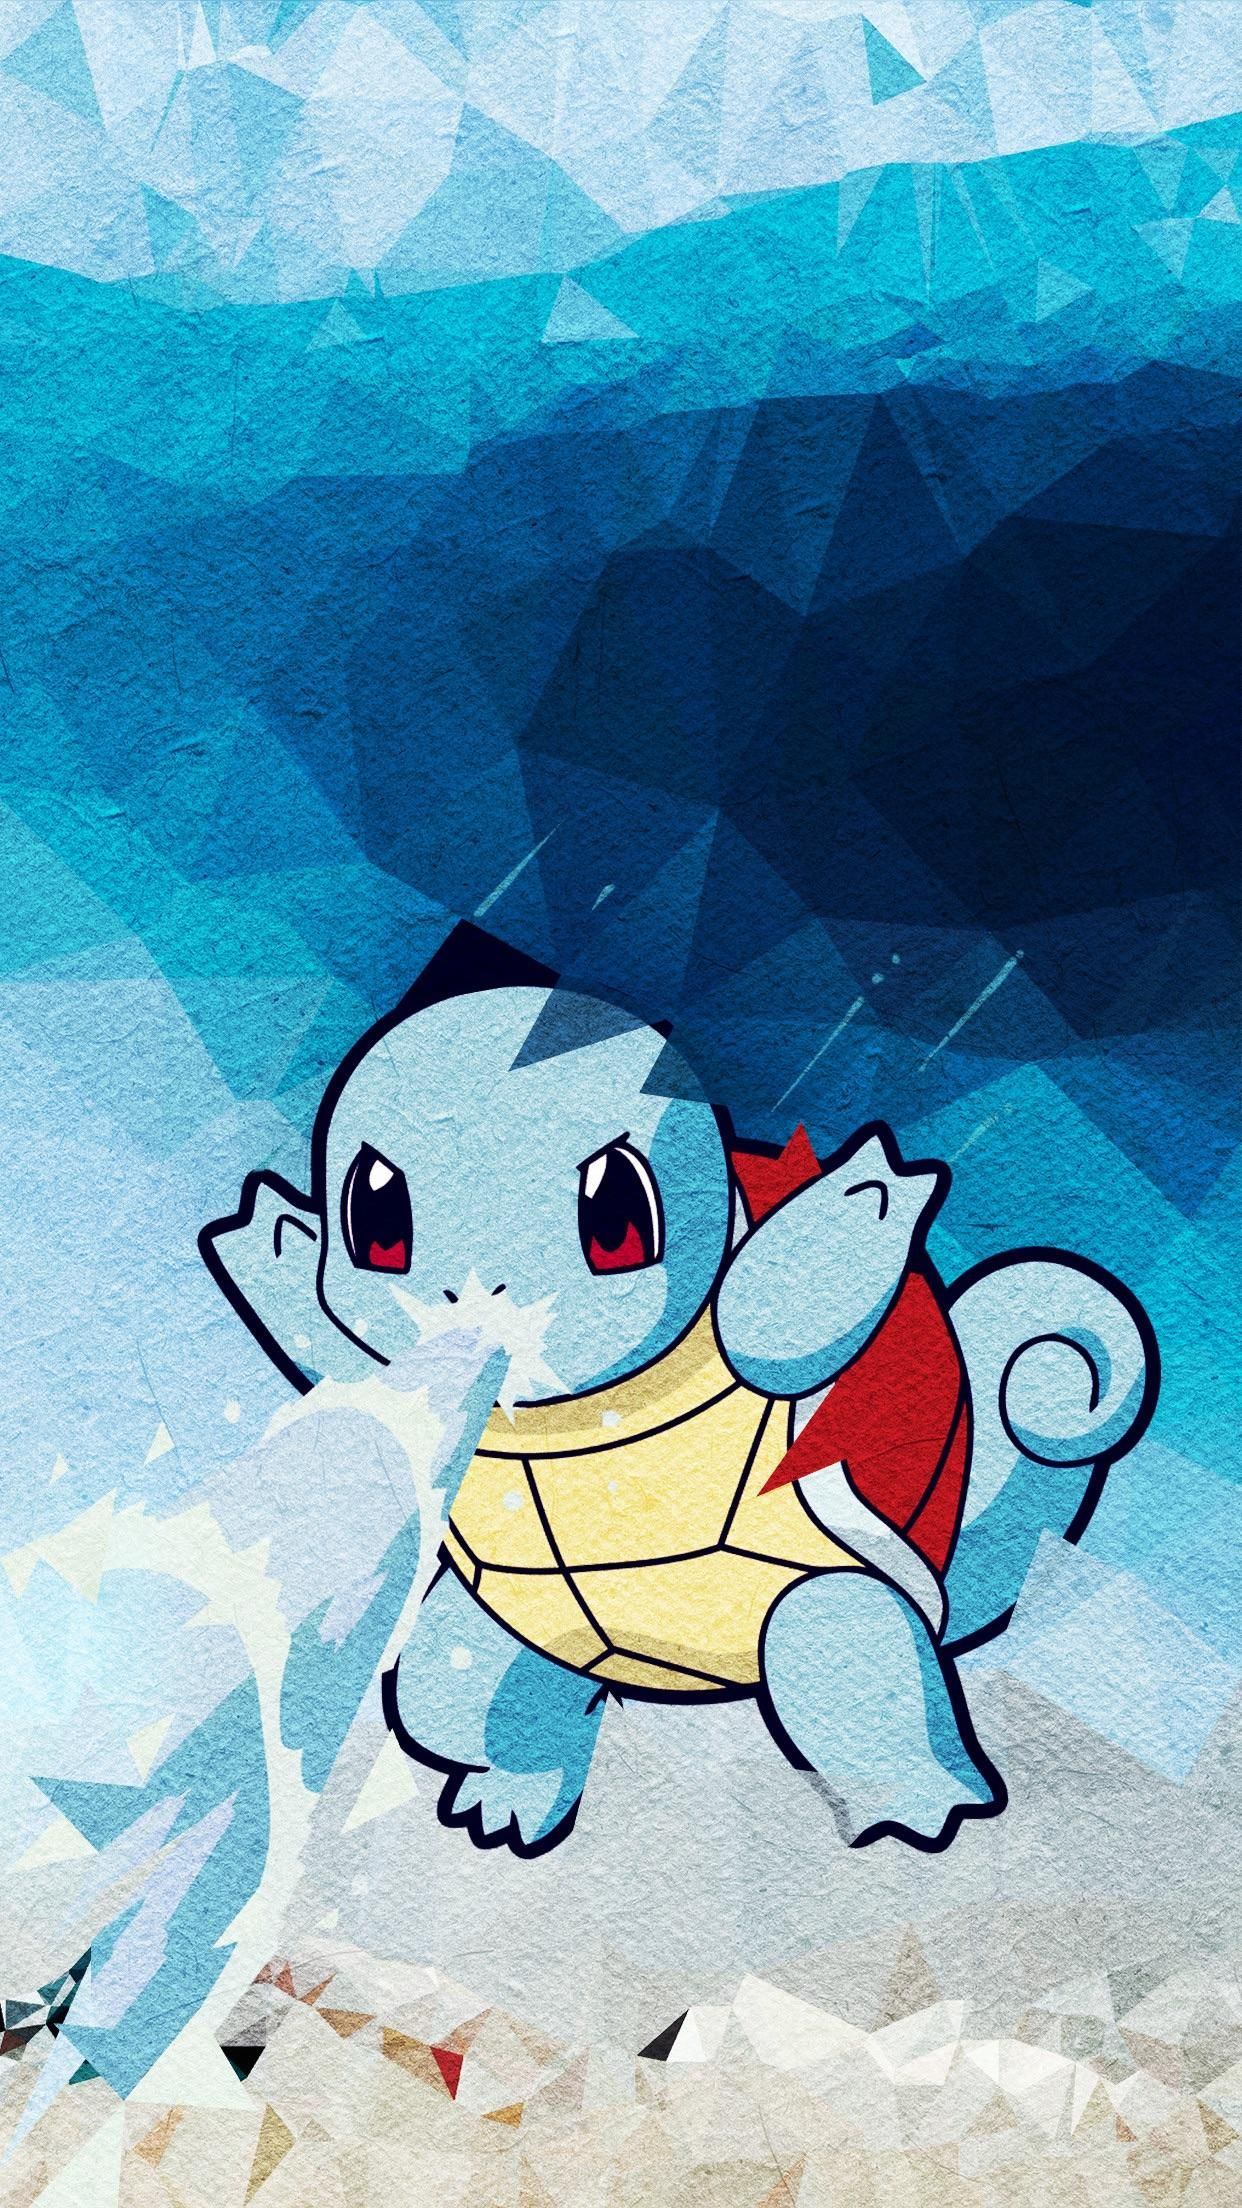 Squirtle Wallpaper Cute Pokemon Wallpaper Pokemon Pokemon Backgrounds